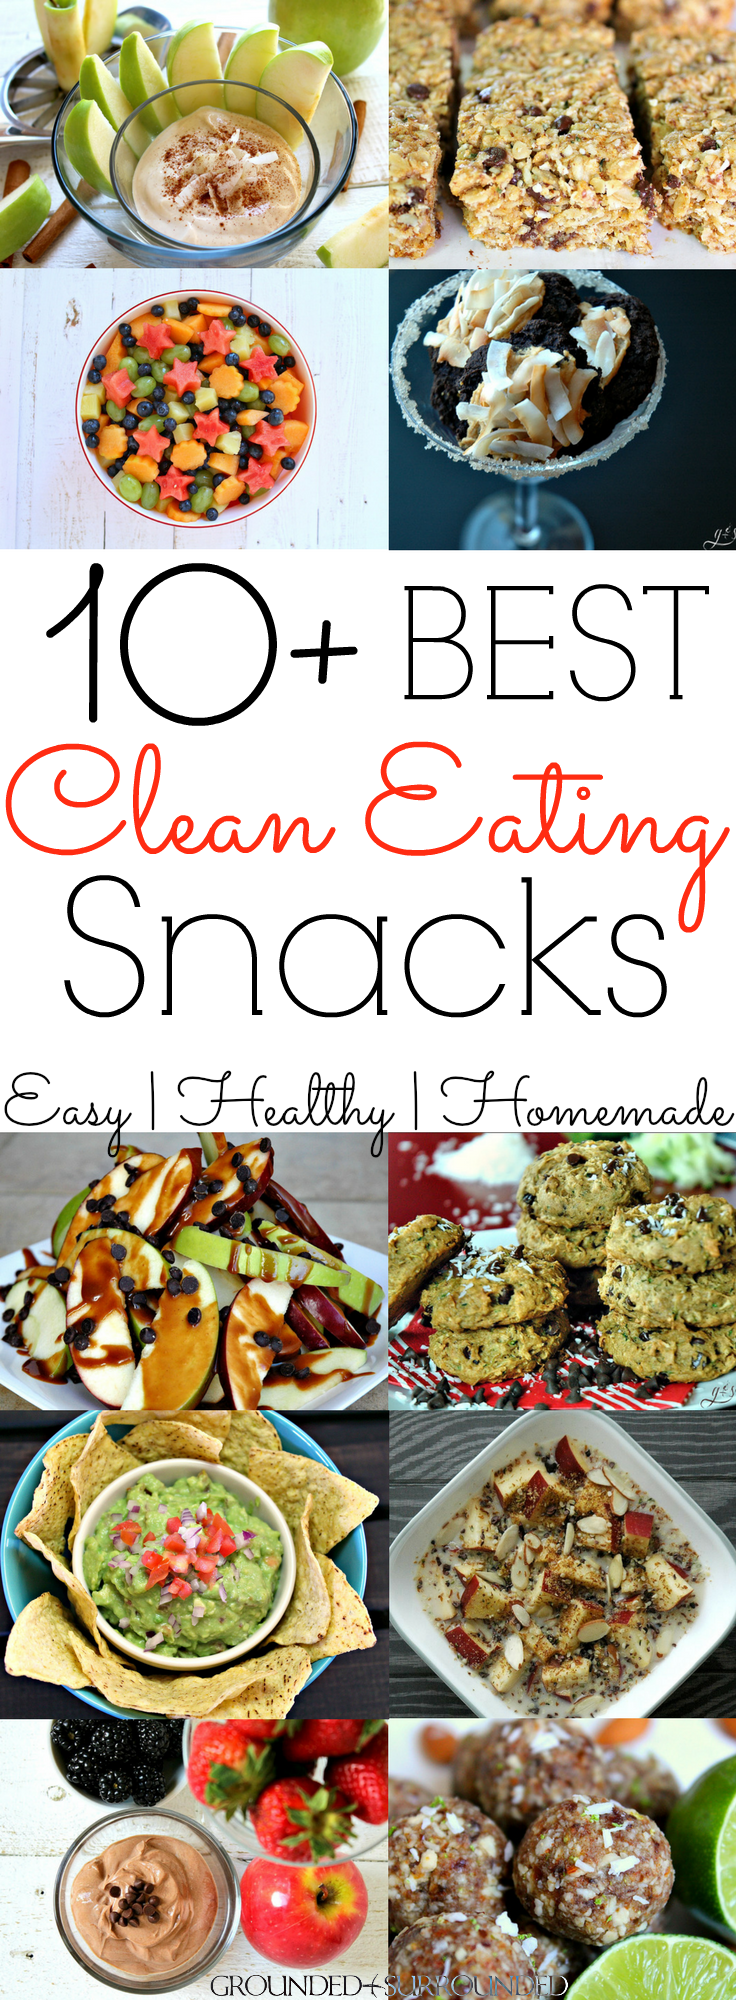 10+ Clean Eating Snack Recipes   Grounded and Surrounded -Featured at the Home Matters Linky Party #123